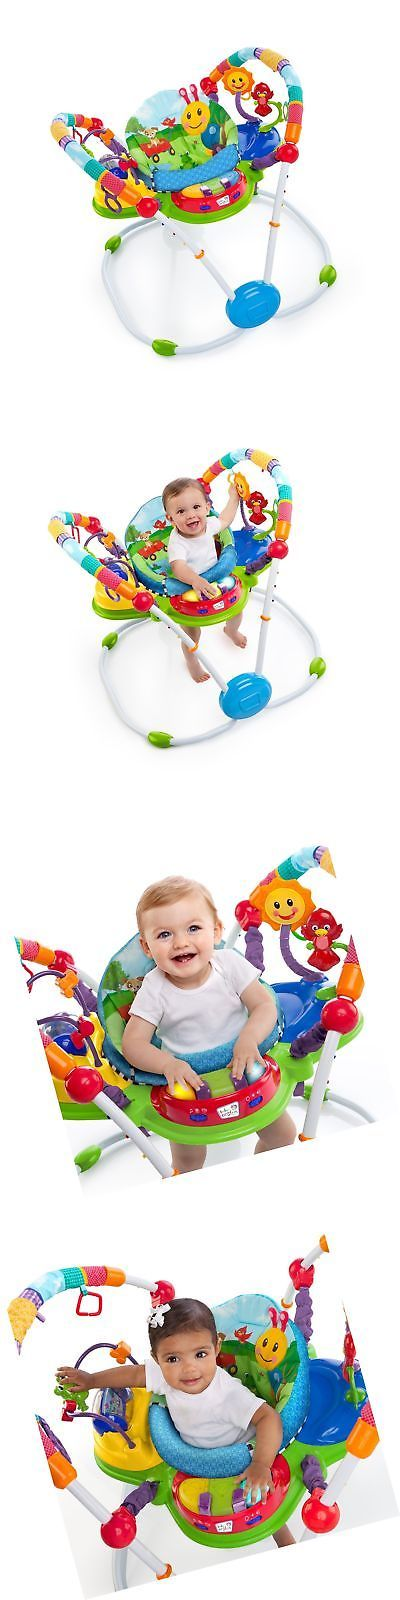 b264c8b87313 sleek b3bec 2ffa5 baby jumping exercisers 117032 baby jumper disney ...